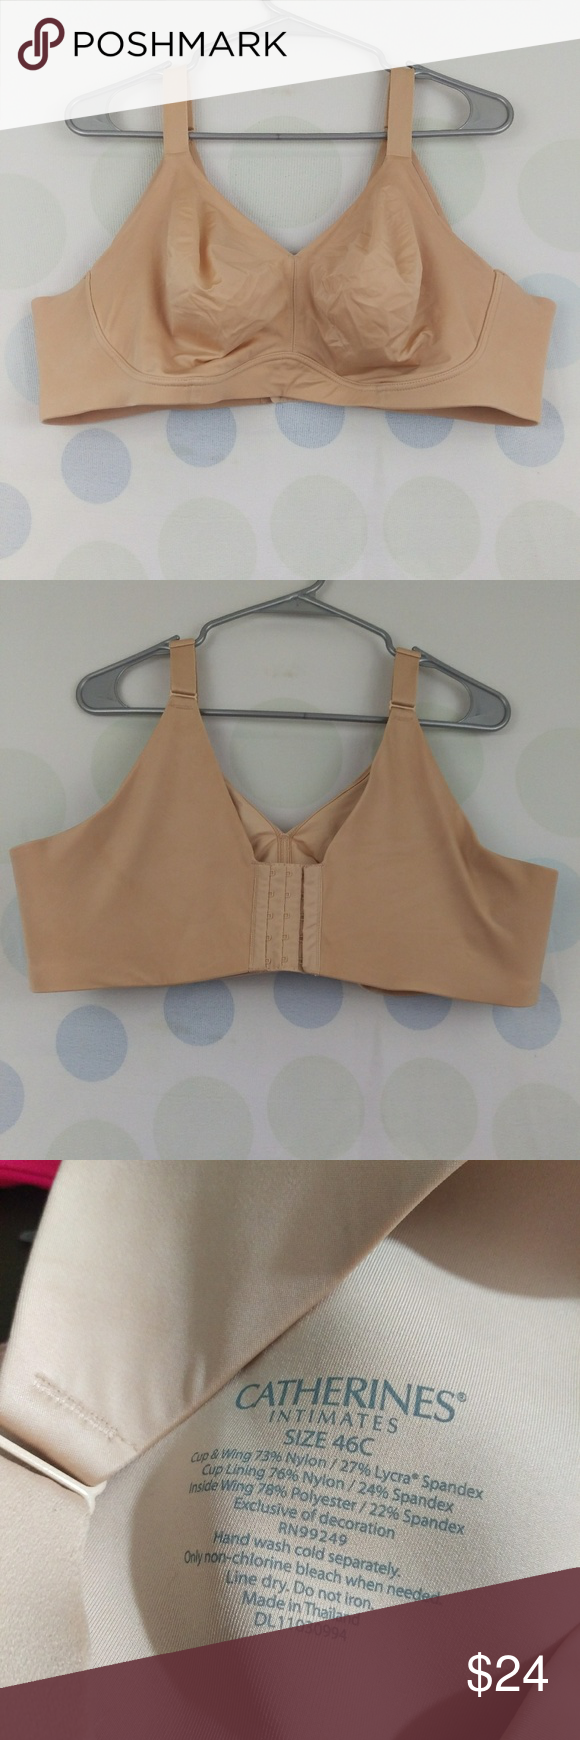 086eb10de0 Catherine s Intimates 46C Wireless Comfort Bra Hello and thank you for  checking out my items!